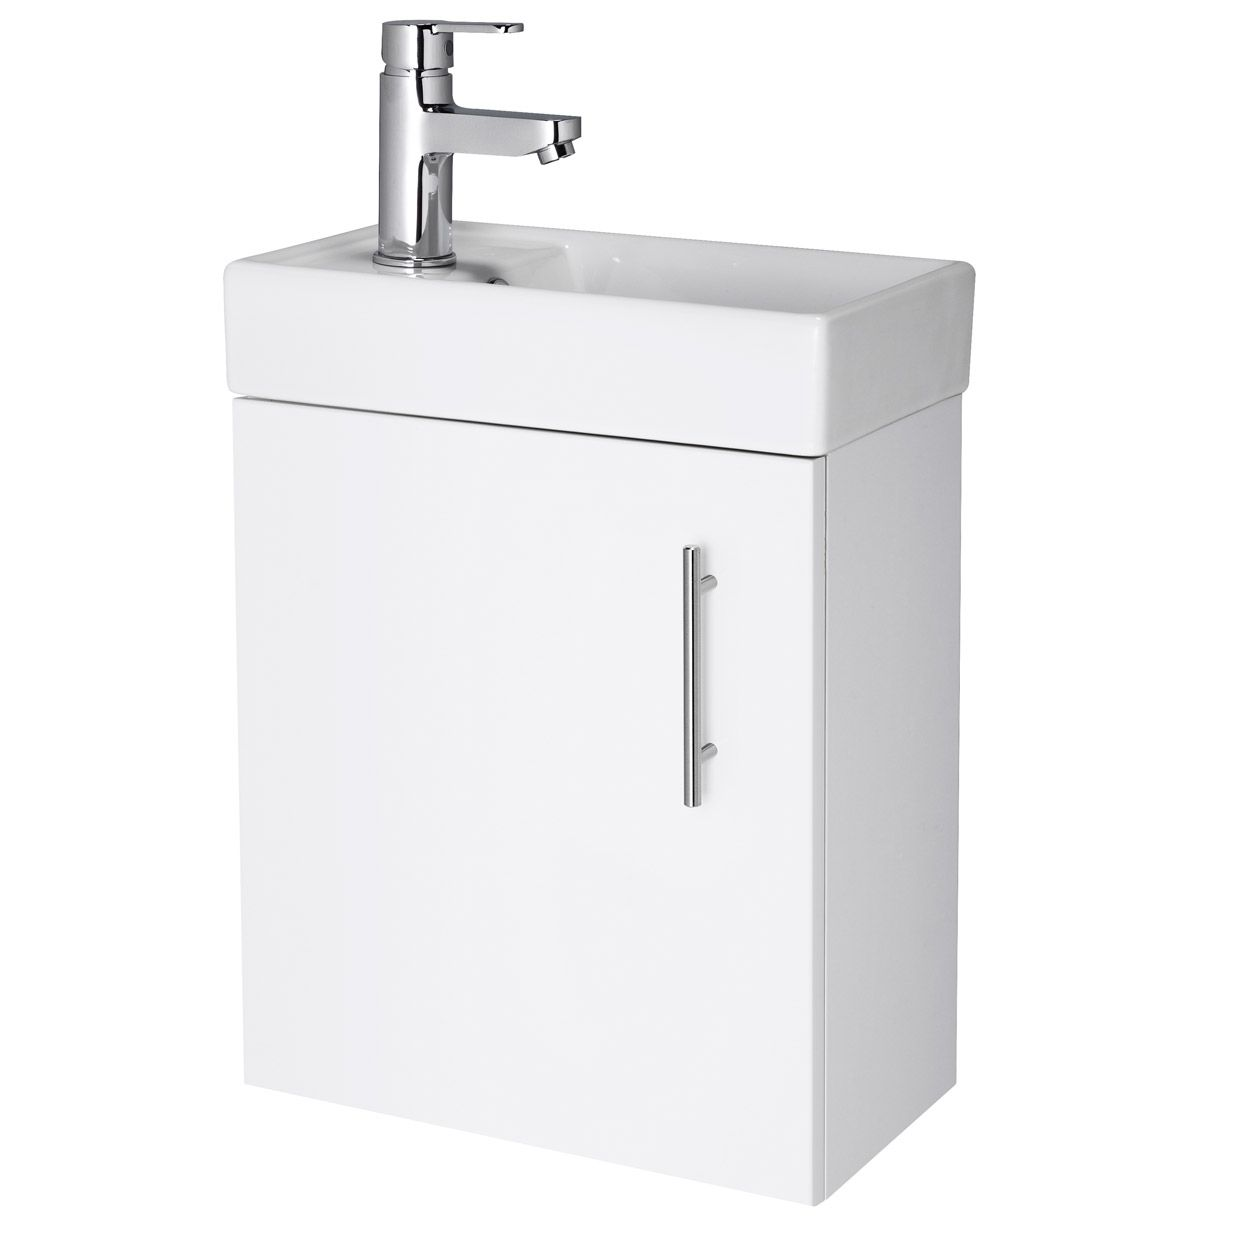 Premier Minimalist Compact Wall Hung Vanity Unit With Basin 400mm Wide Gloss White 1 Tap Hole Small Bathroom Vanities Bathroom Vanity Units Cloakroom Vanity Unit